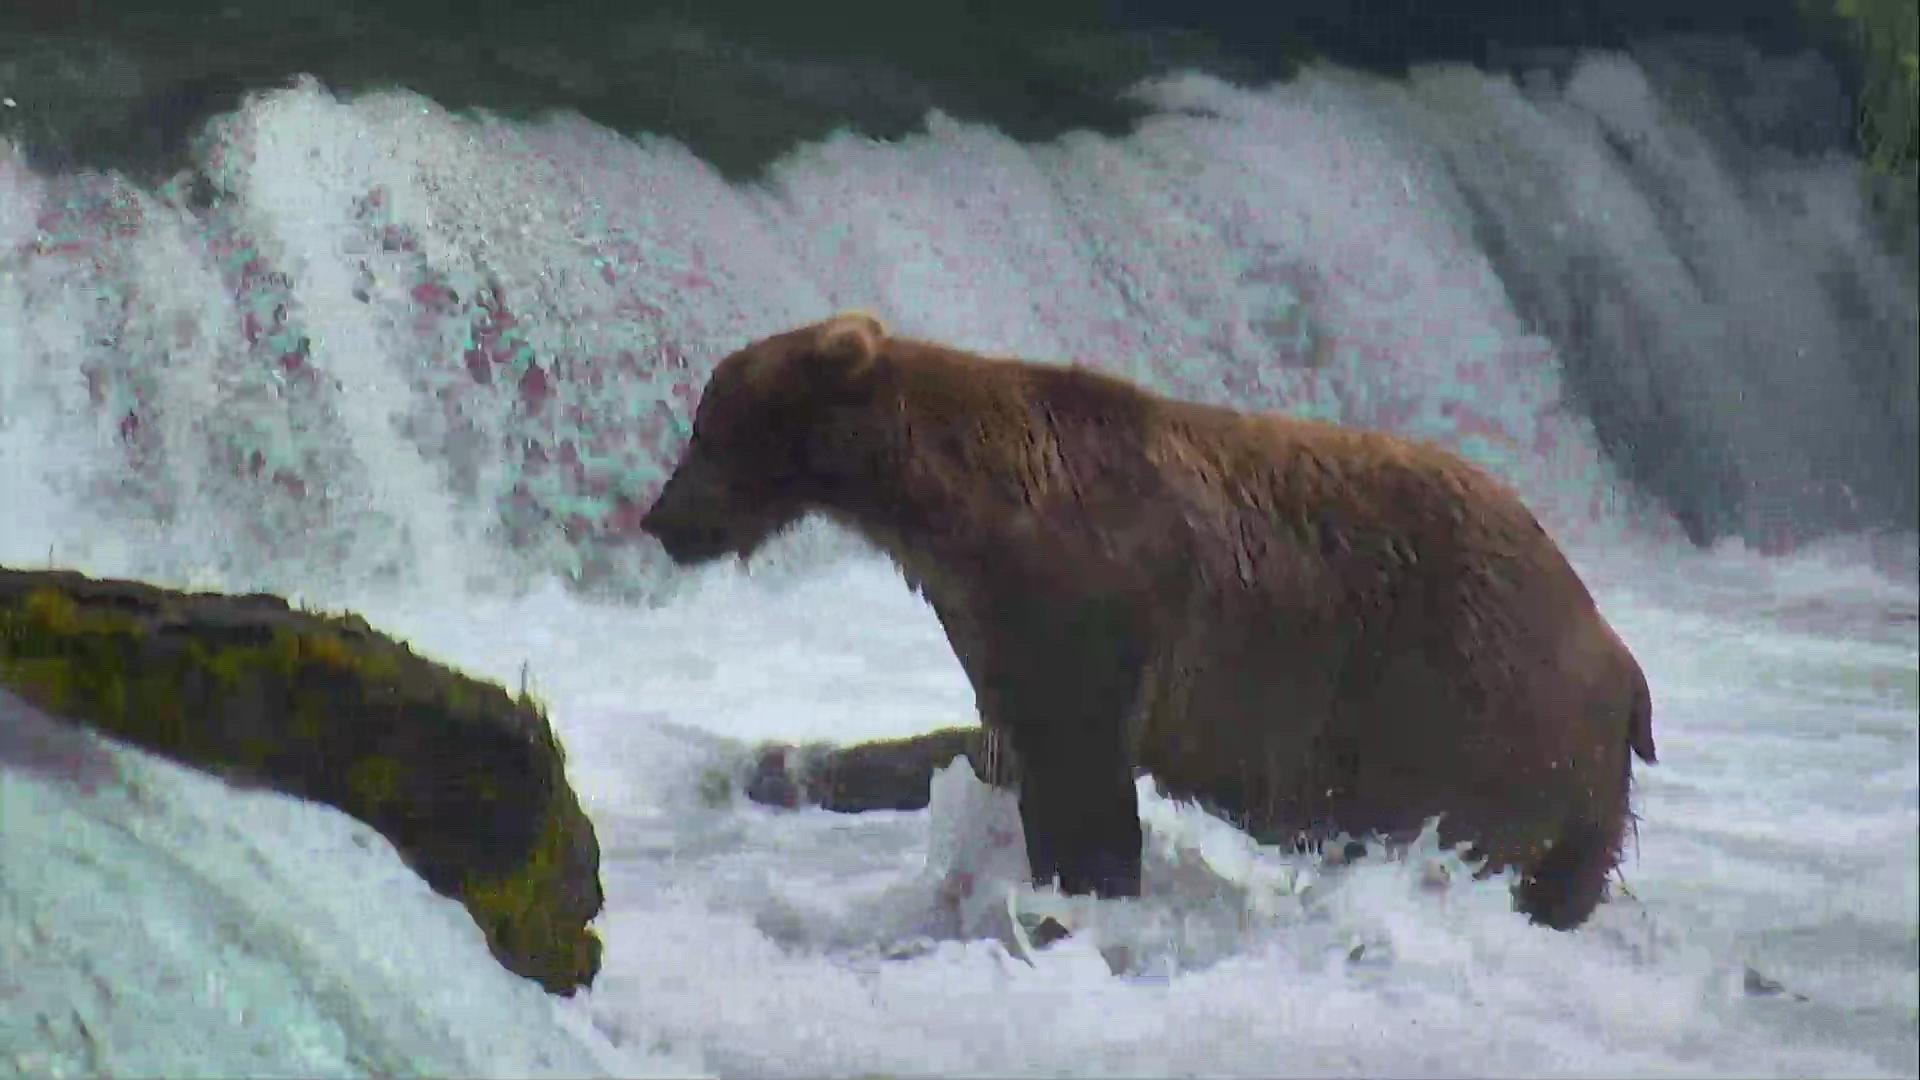 Bear Osos Videos Porno brown bear cam - brooks falls in katmai national park